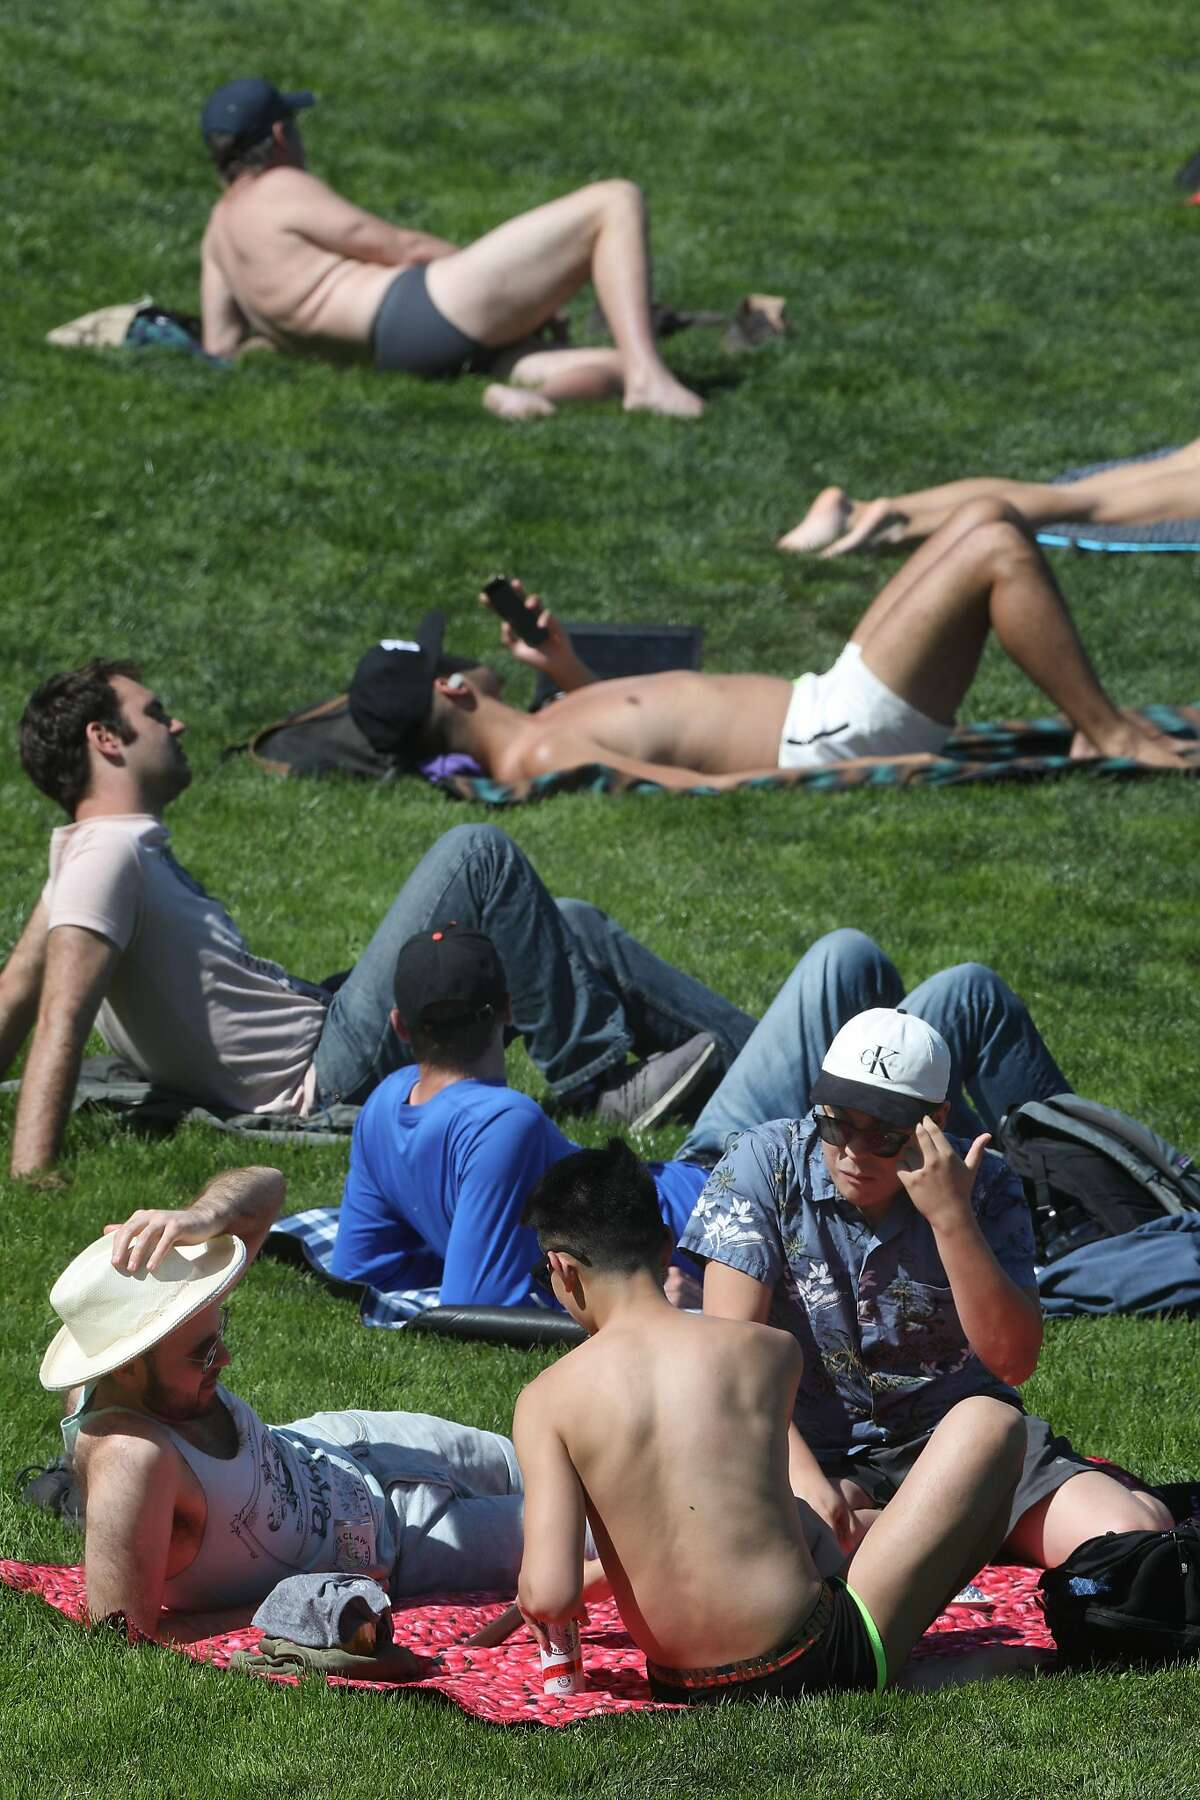 Sunbathers seen at Dolores park today on Tuesday, April 14, 2020, in San Francisco, Calif.